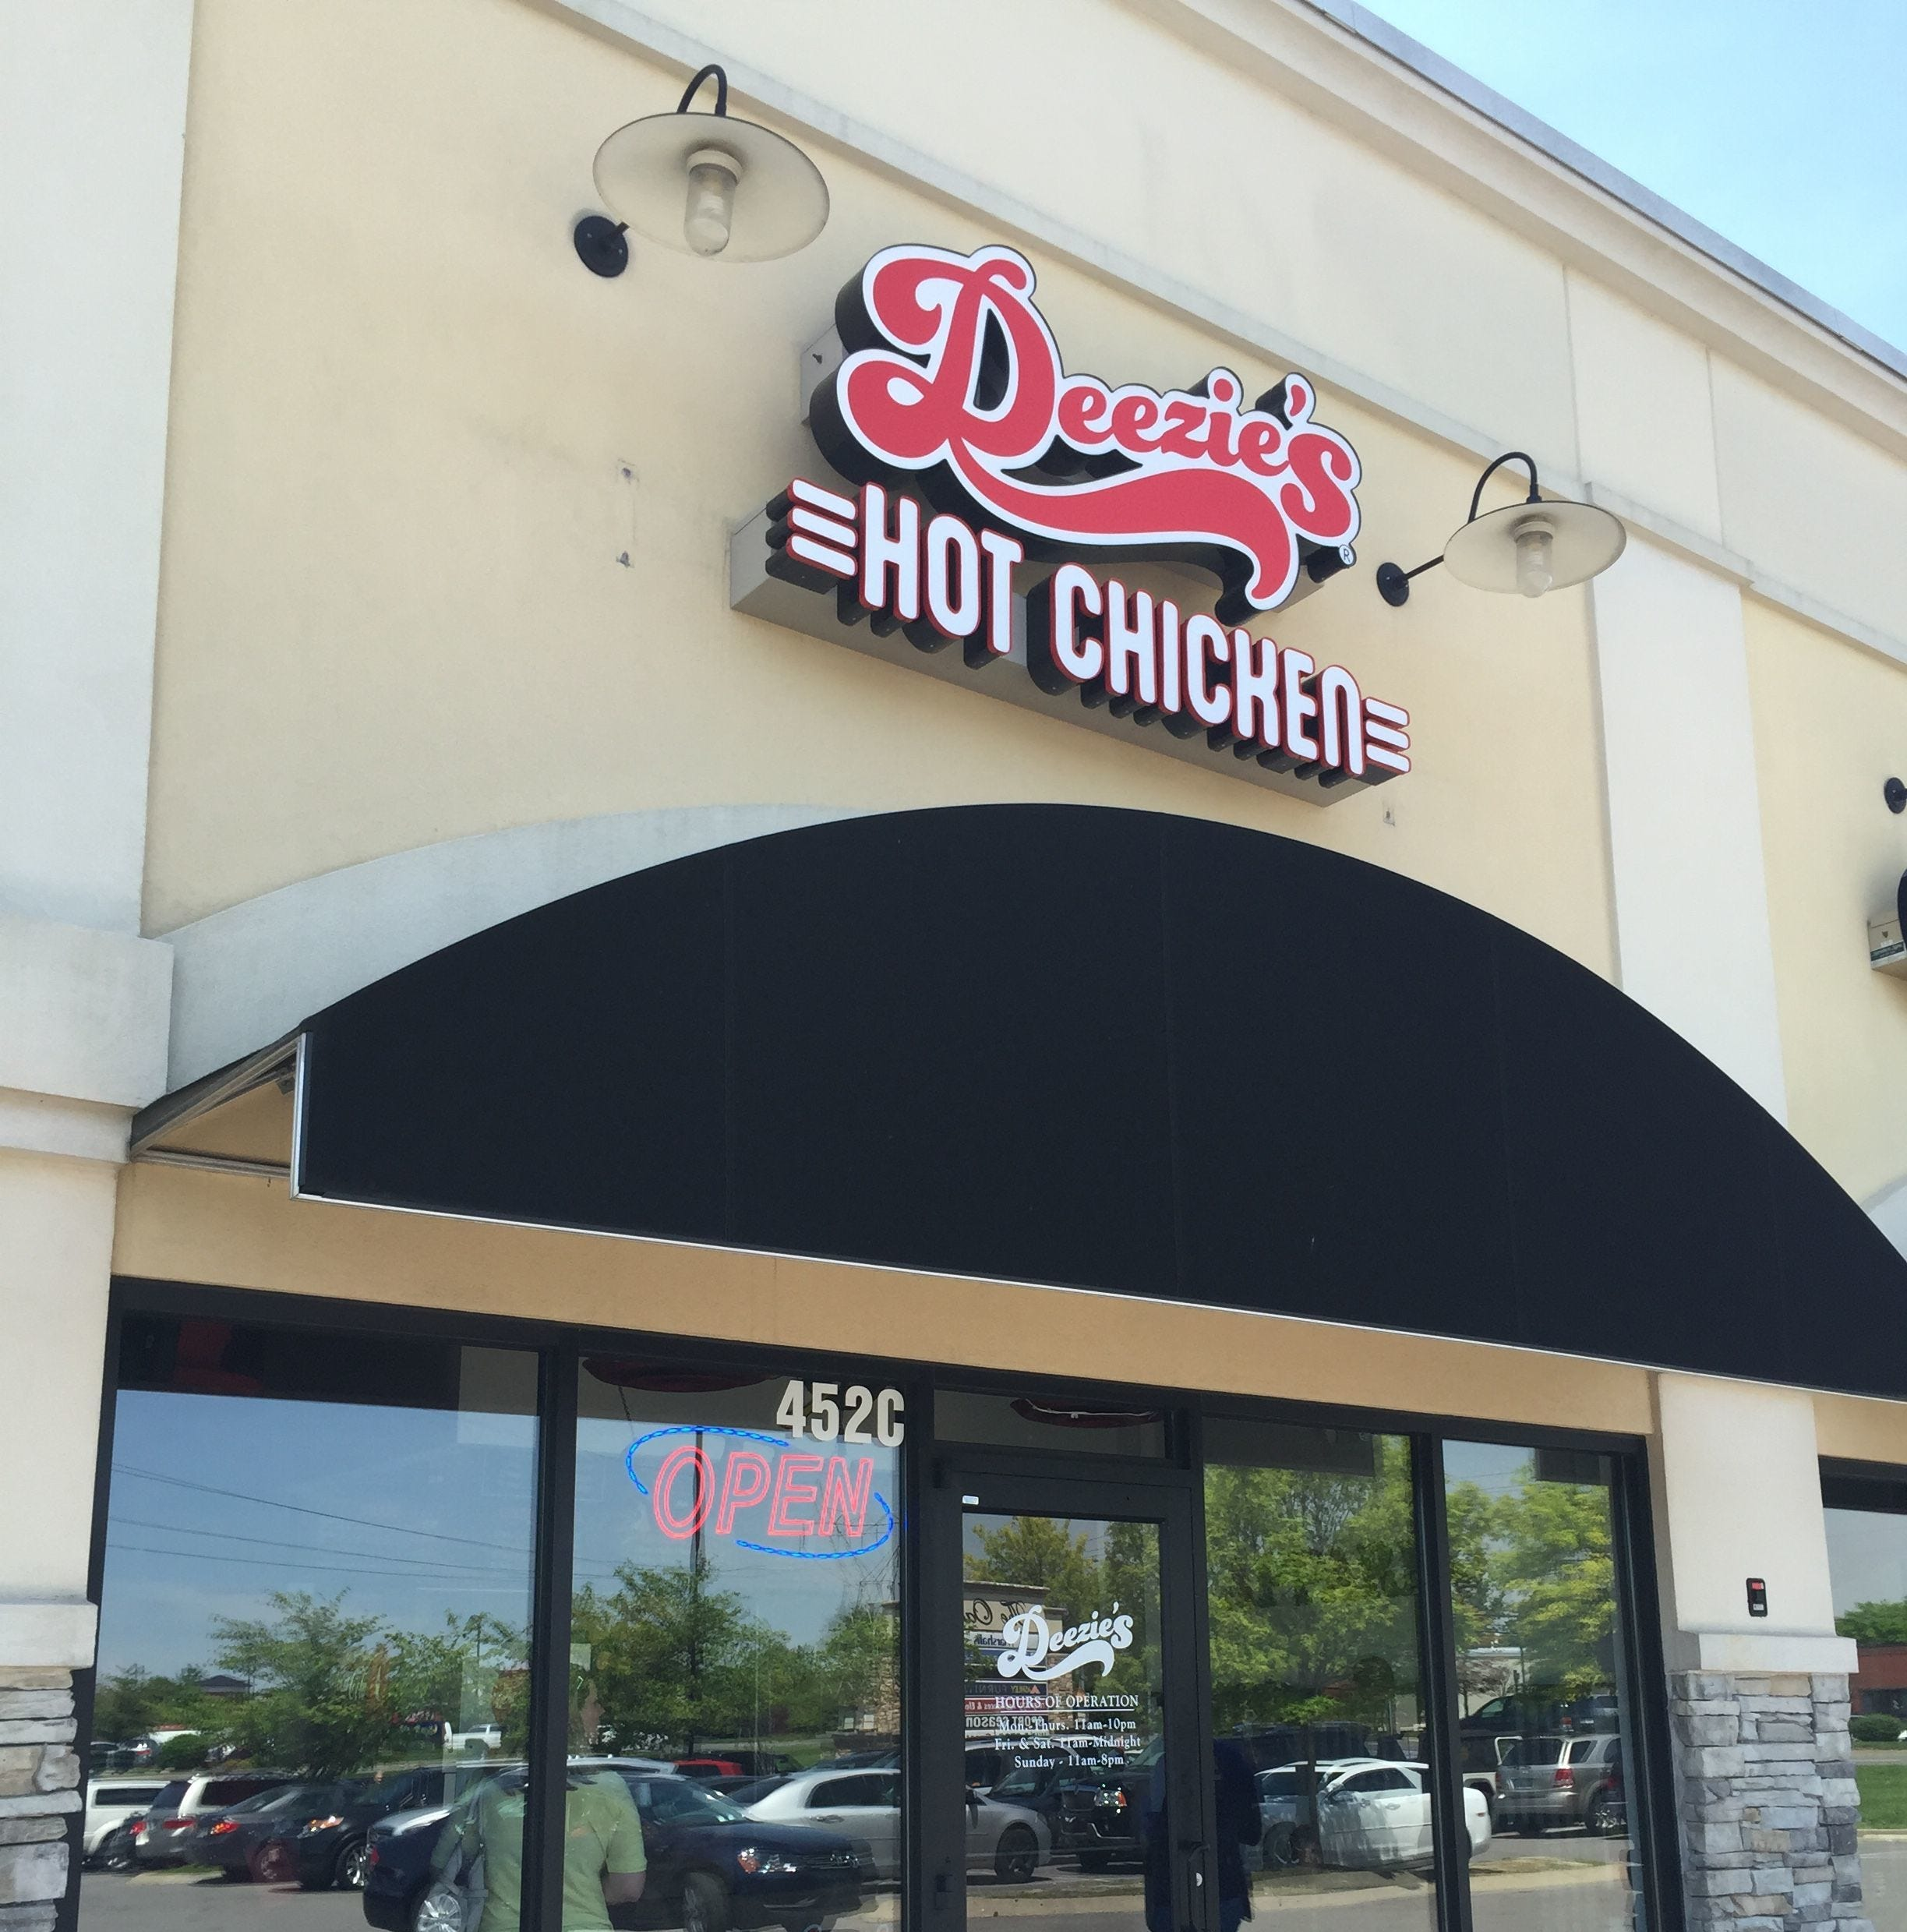 Deezie's Hot Chicken in Murfreesboro closing its doors